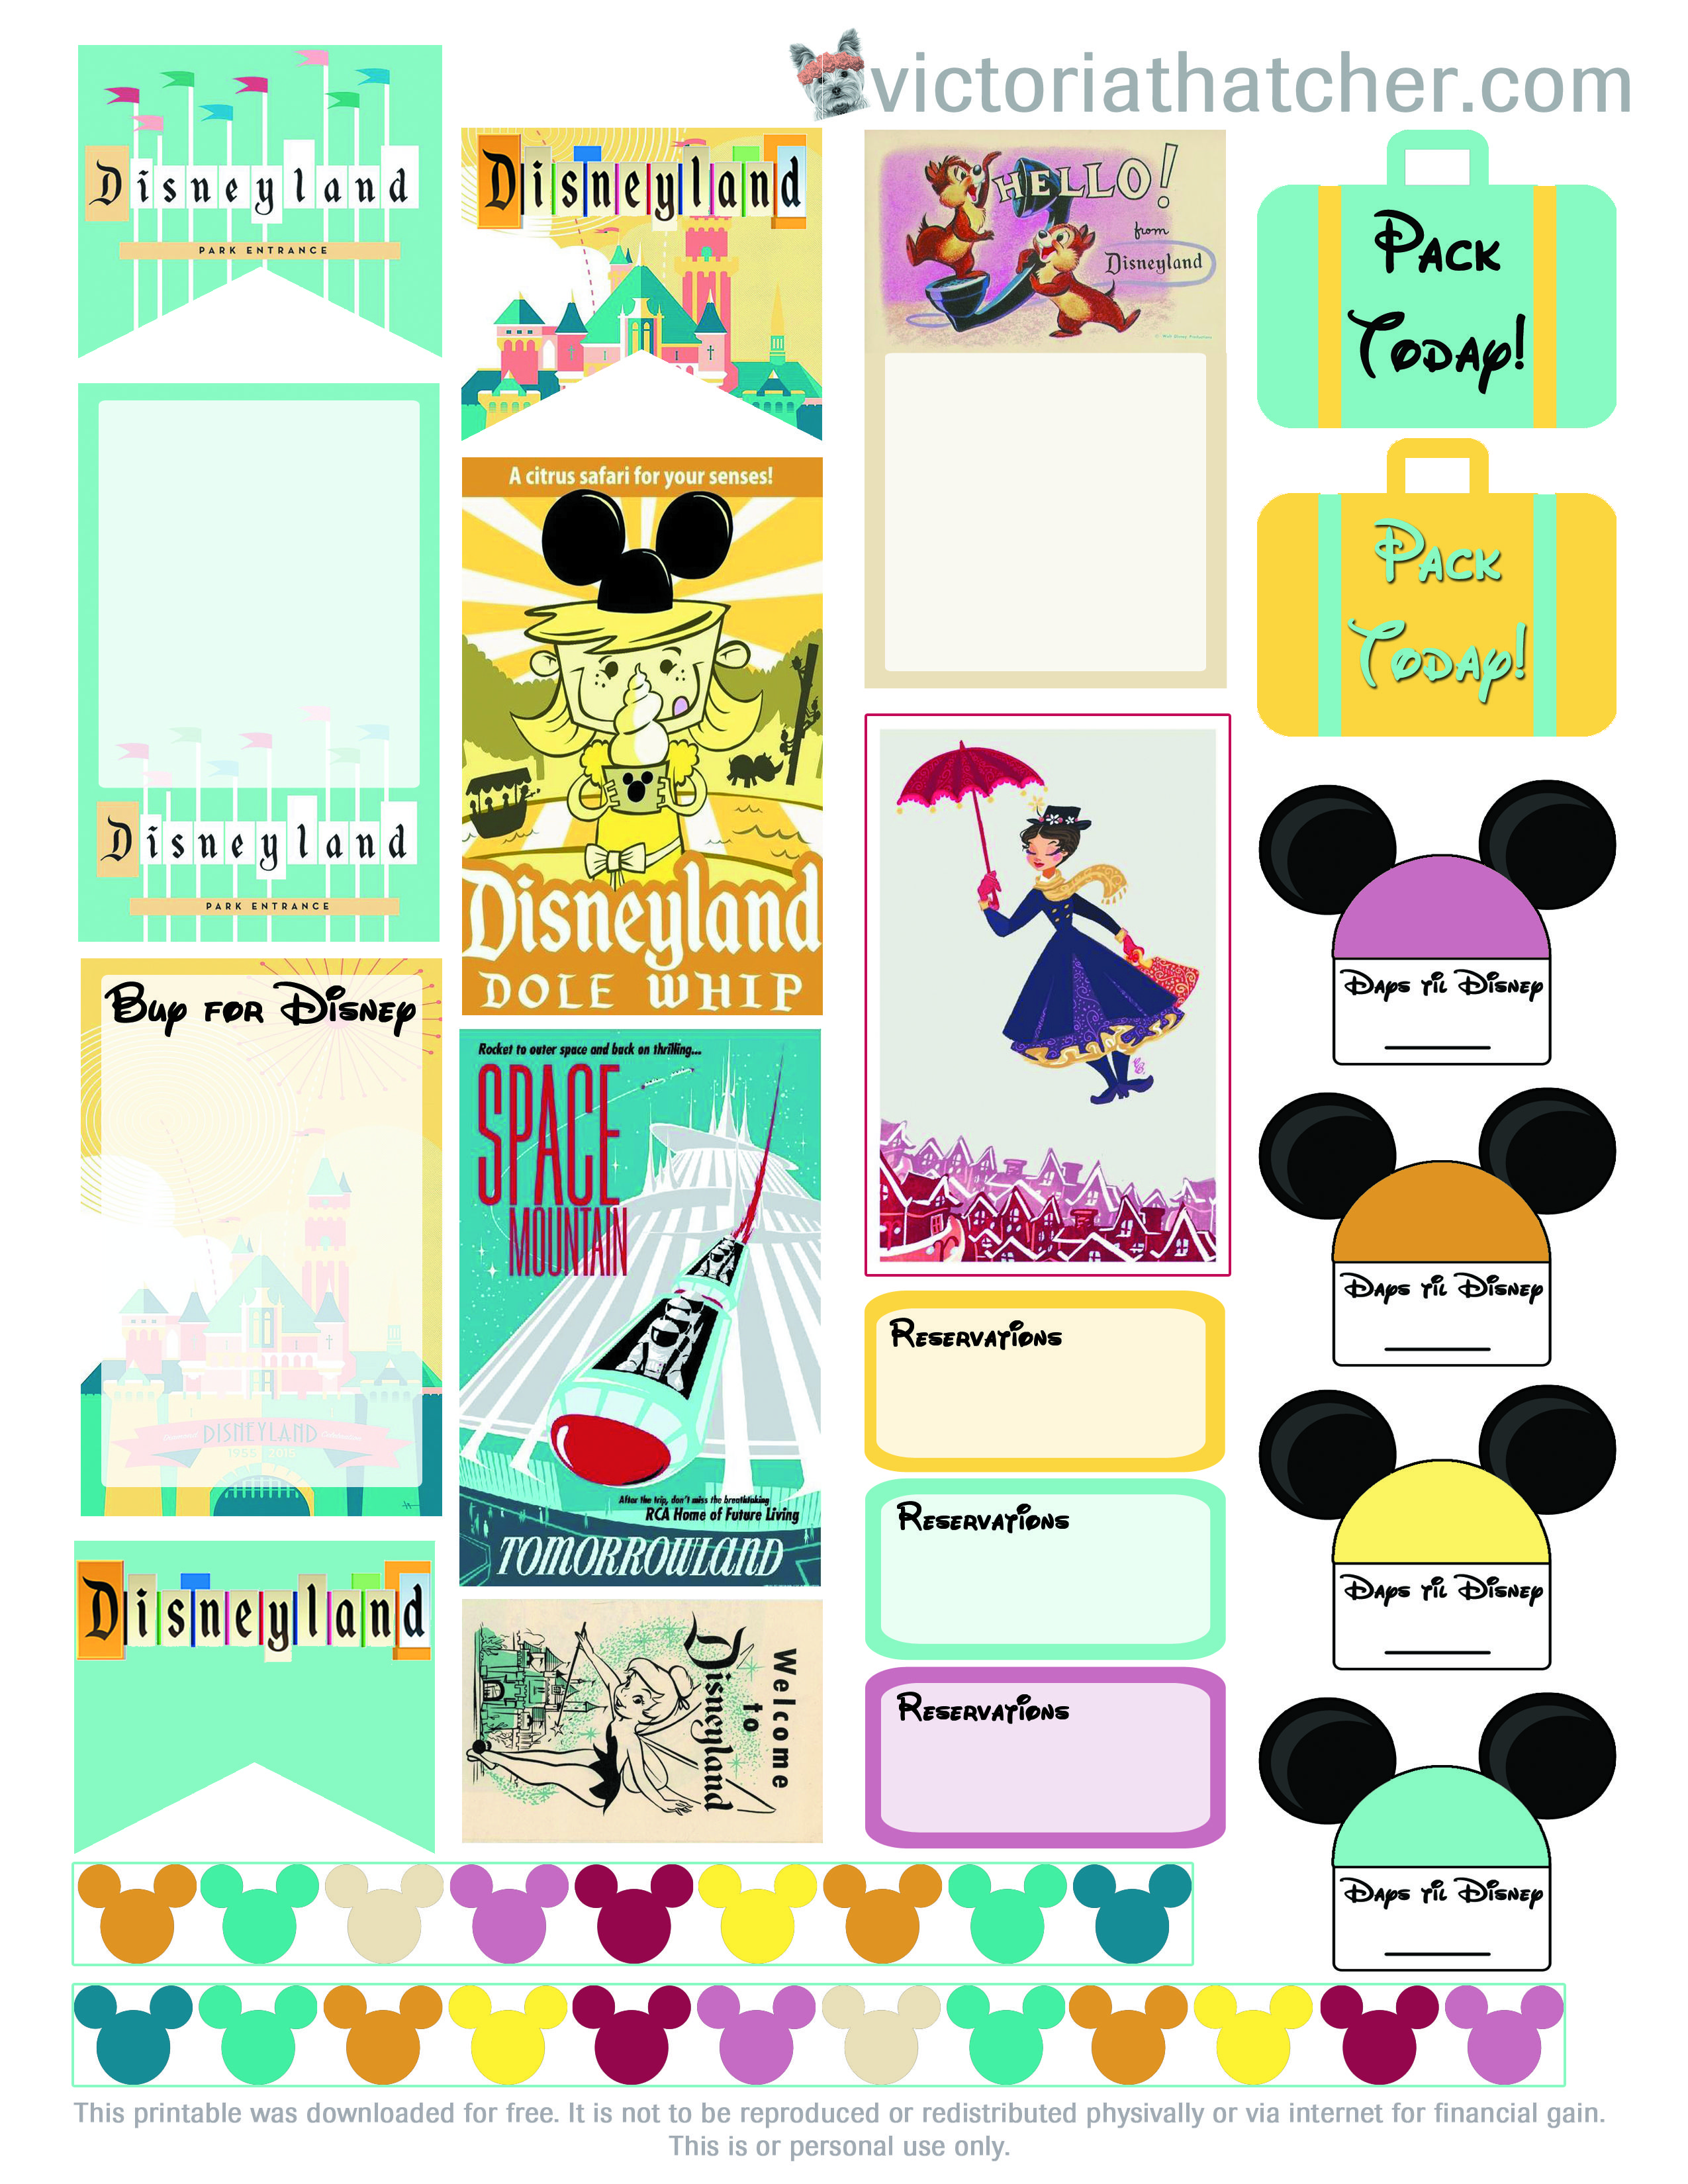 How to scrapbook disney vacation - Plan Your Disney Vacation Using These Free Planner Stickers